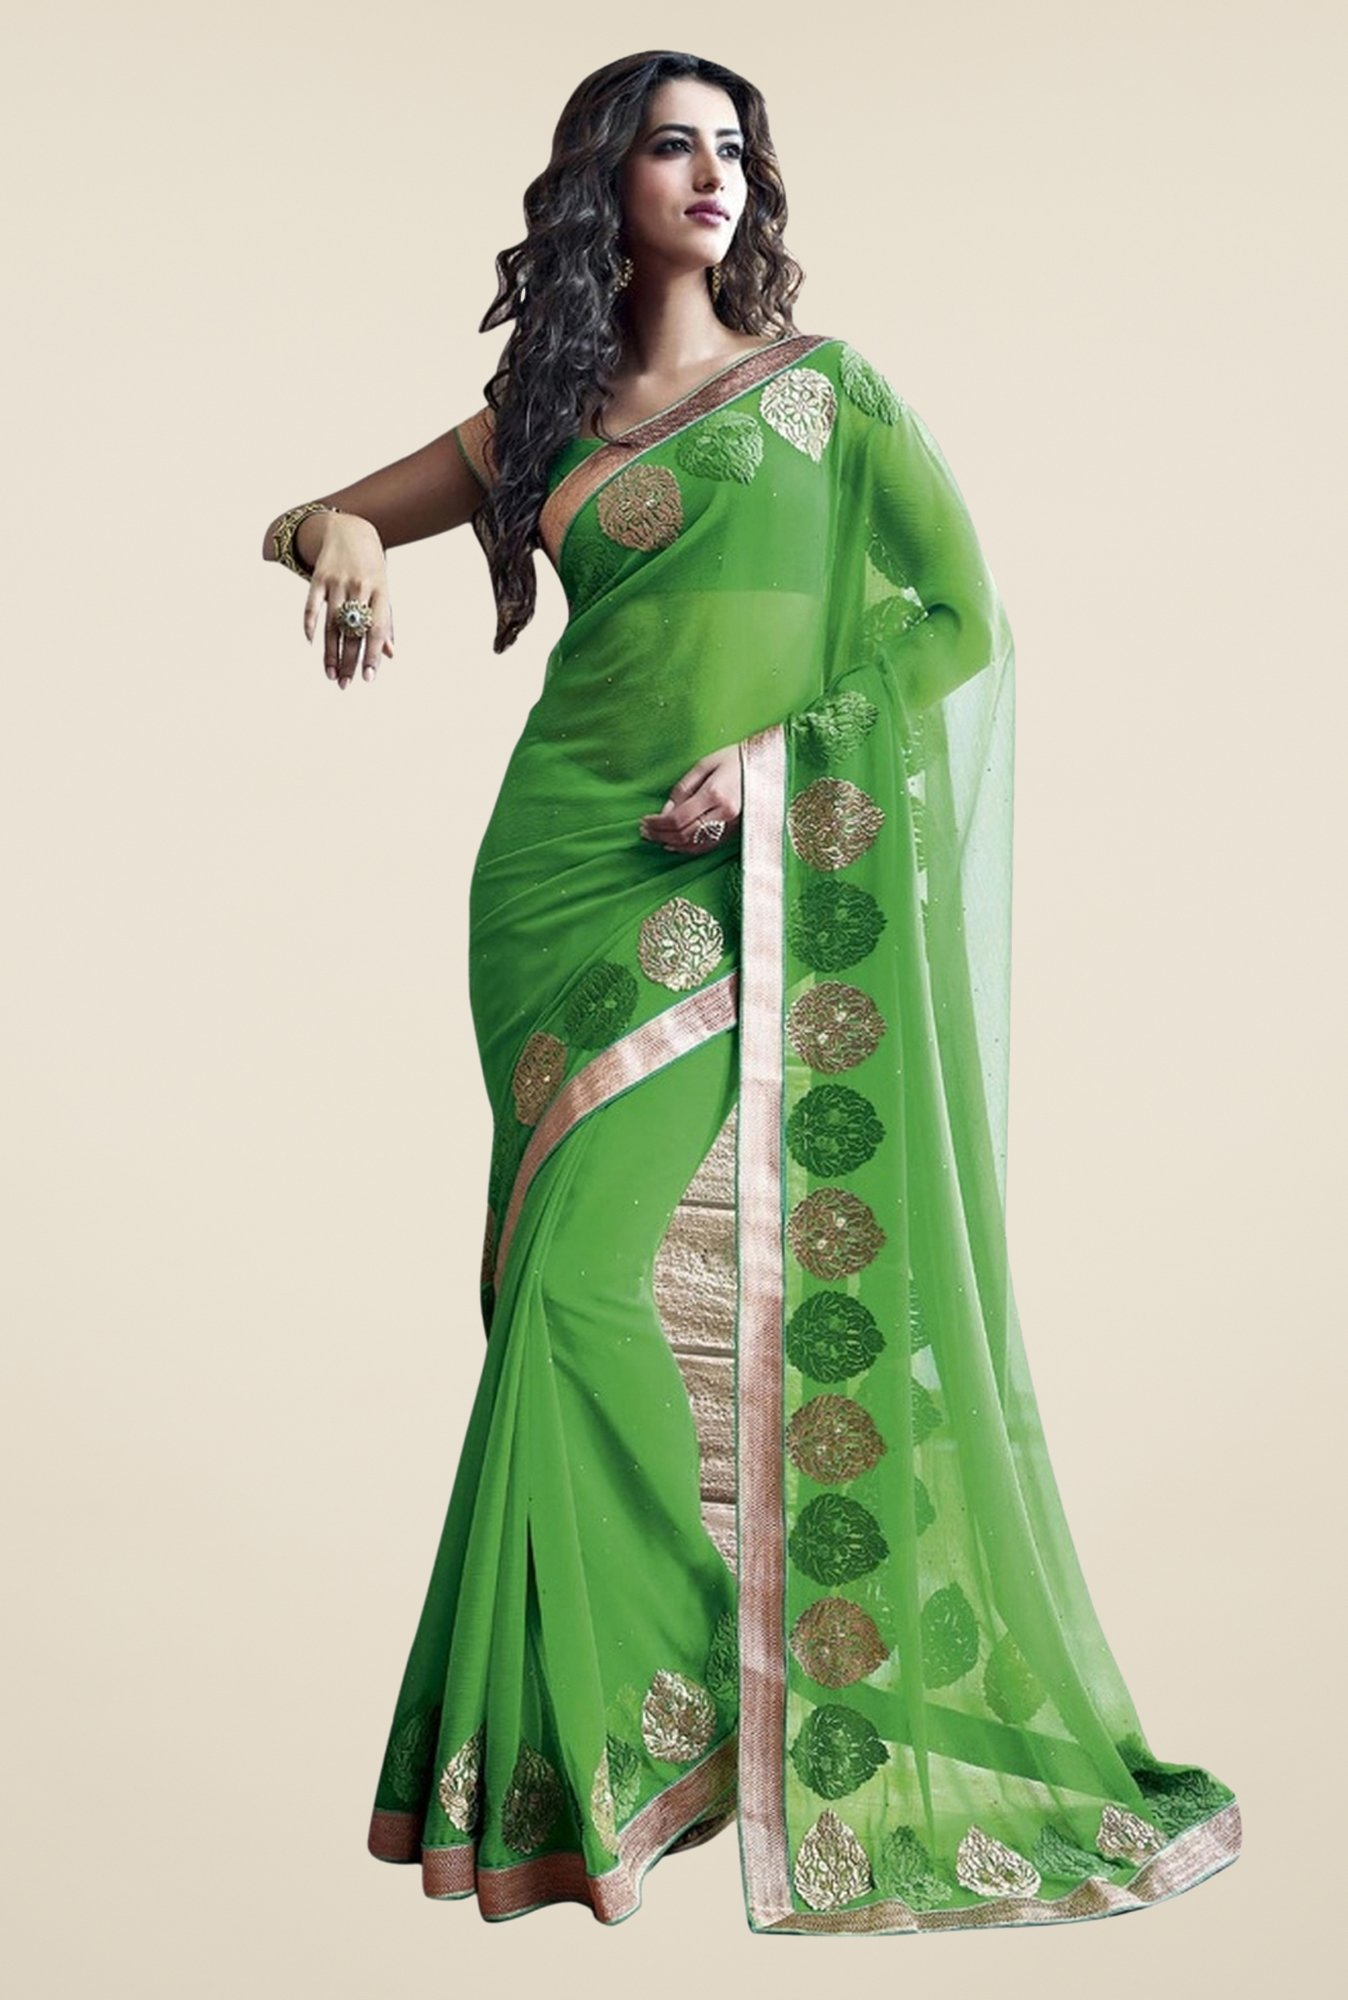 Triveni Green Embroidered Chiffon Saree